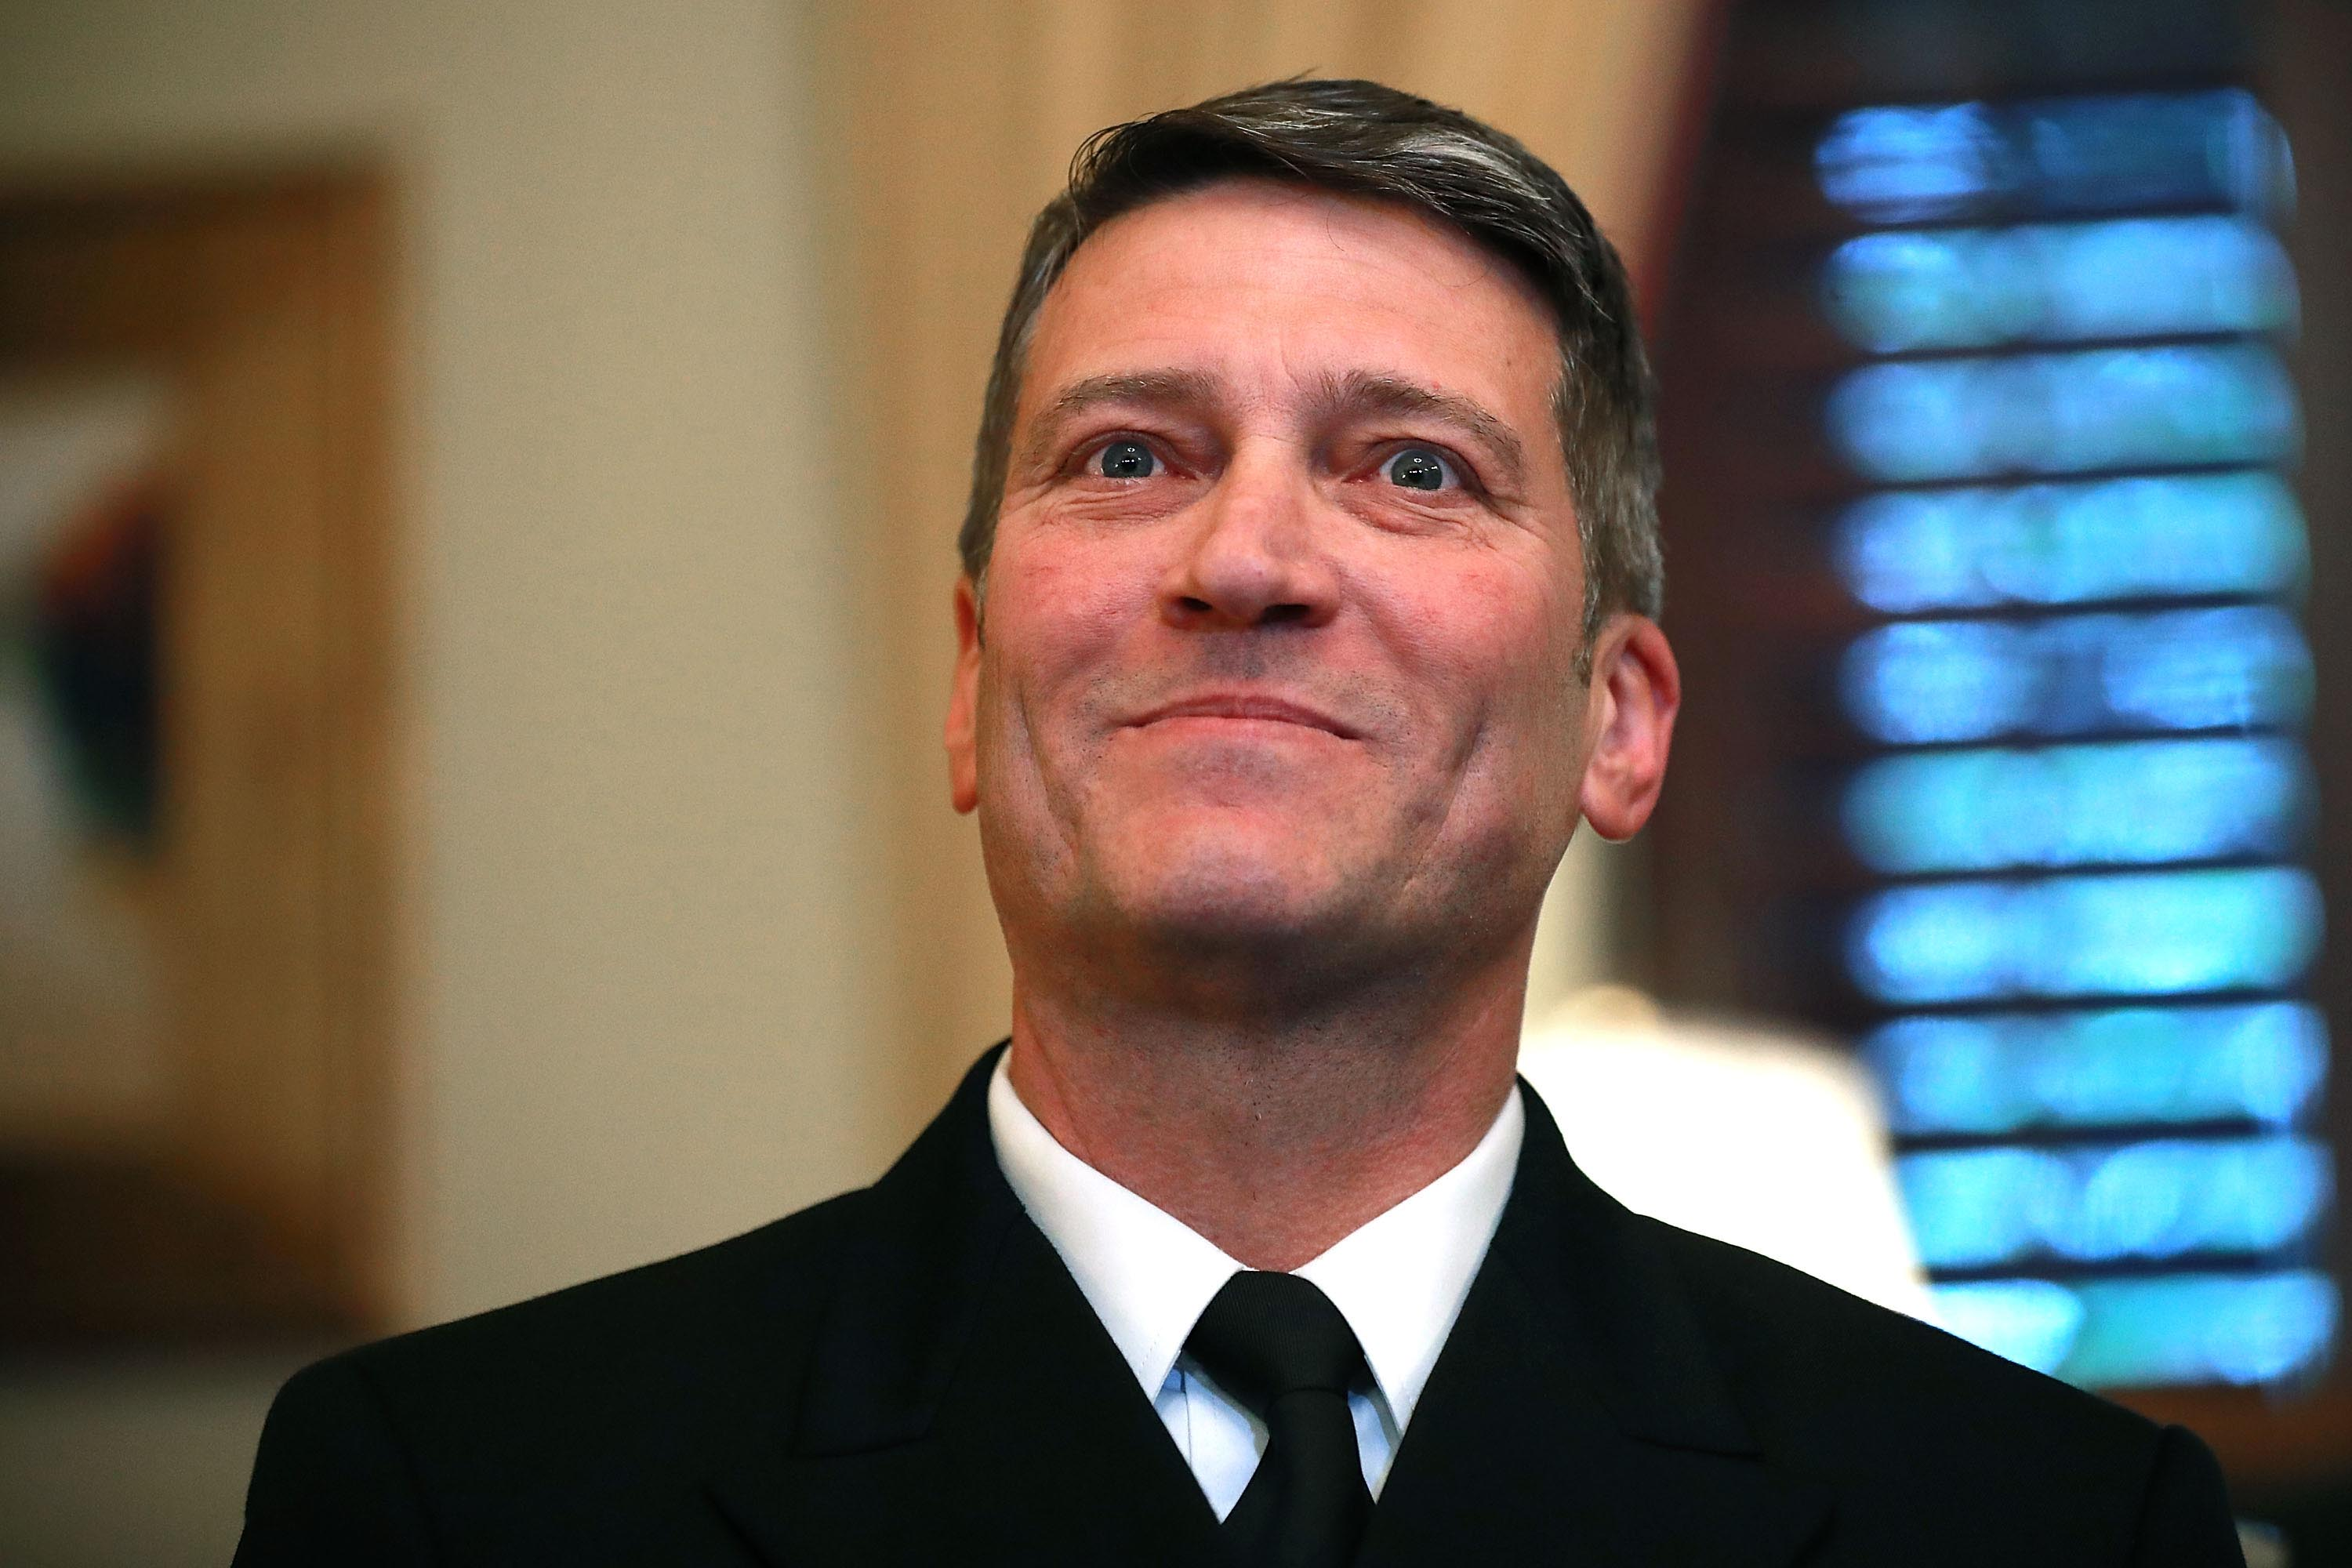 Trump's former physician Ronny Jackson wins GOP primary runoff for Texas congressional seat